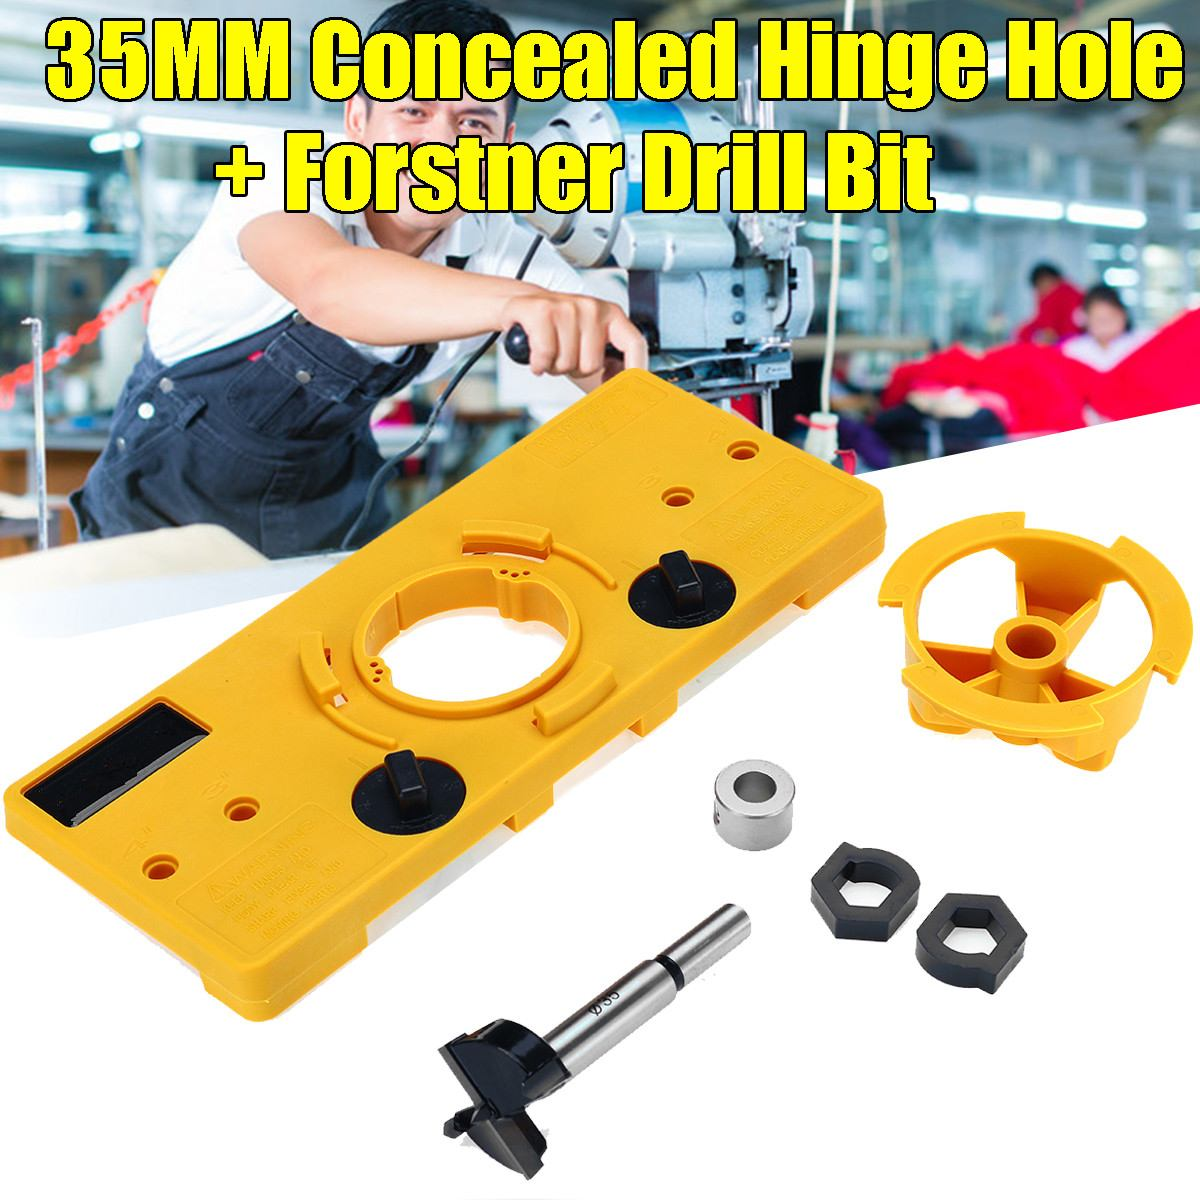 35mm Forstner Hinge Hole Saw Jig Drilling Guide Door Hole Locator Opener Template Wood Cutter Carpenter DIY Woodworking Tool Set